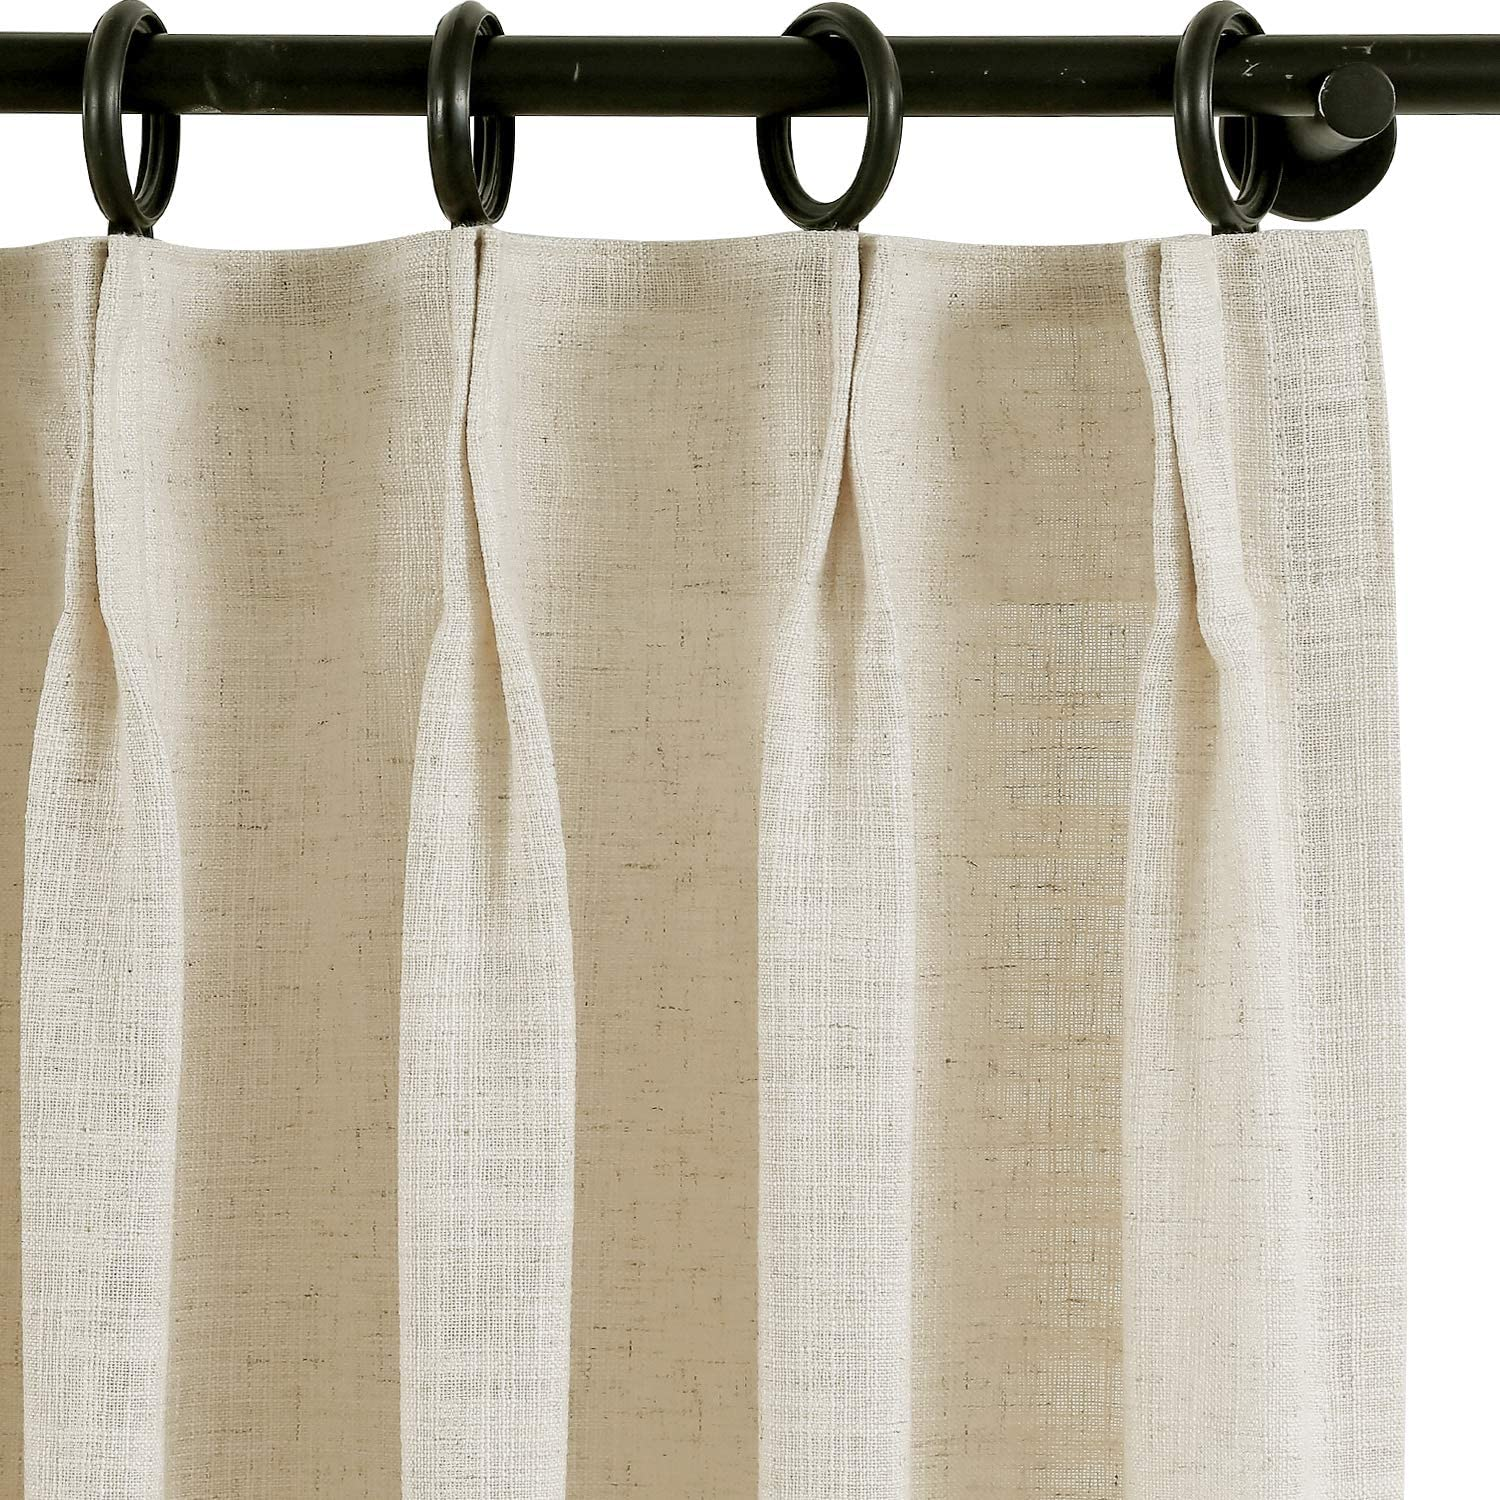 Custom Curtain Drapery Polyester Linen Curtain, for Traverse Rod and Rod, Living Room Curtain Dining Room Curtain, Blackout Room Darkening Lined and Unlined Curtain, ChadMade Liz Collection